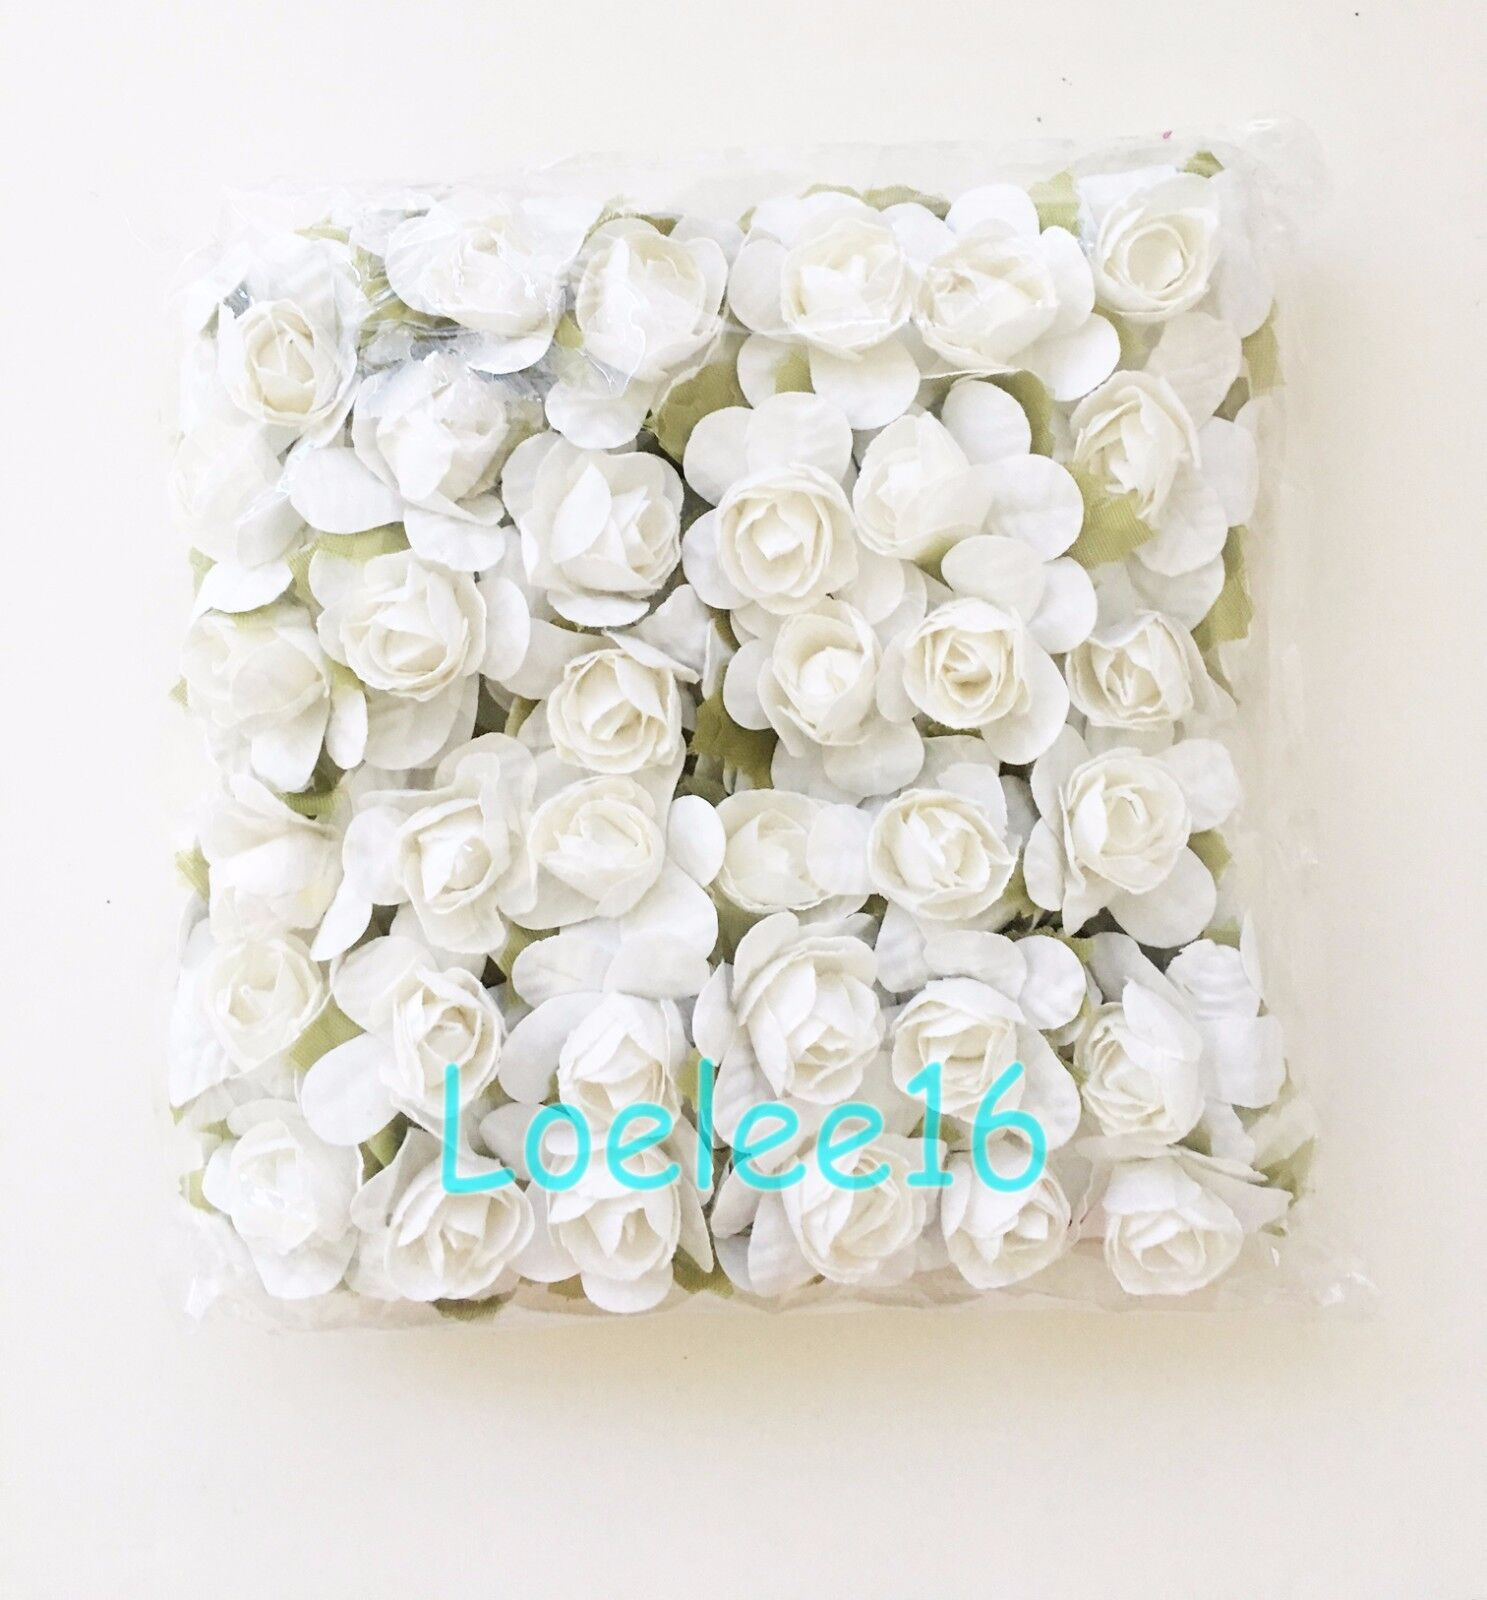 How to scrapbook wedding cards - 72 Large Mulberry Rose Paper Flower Lot Wedding